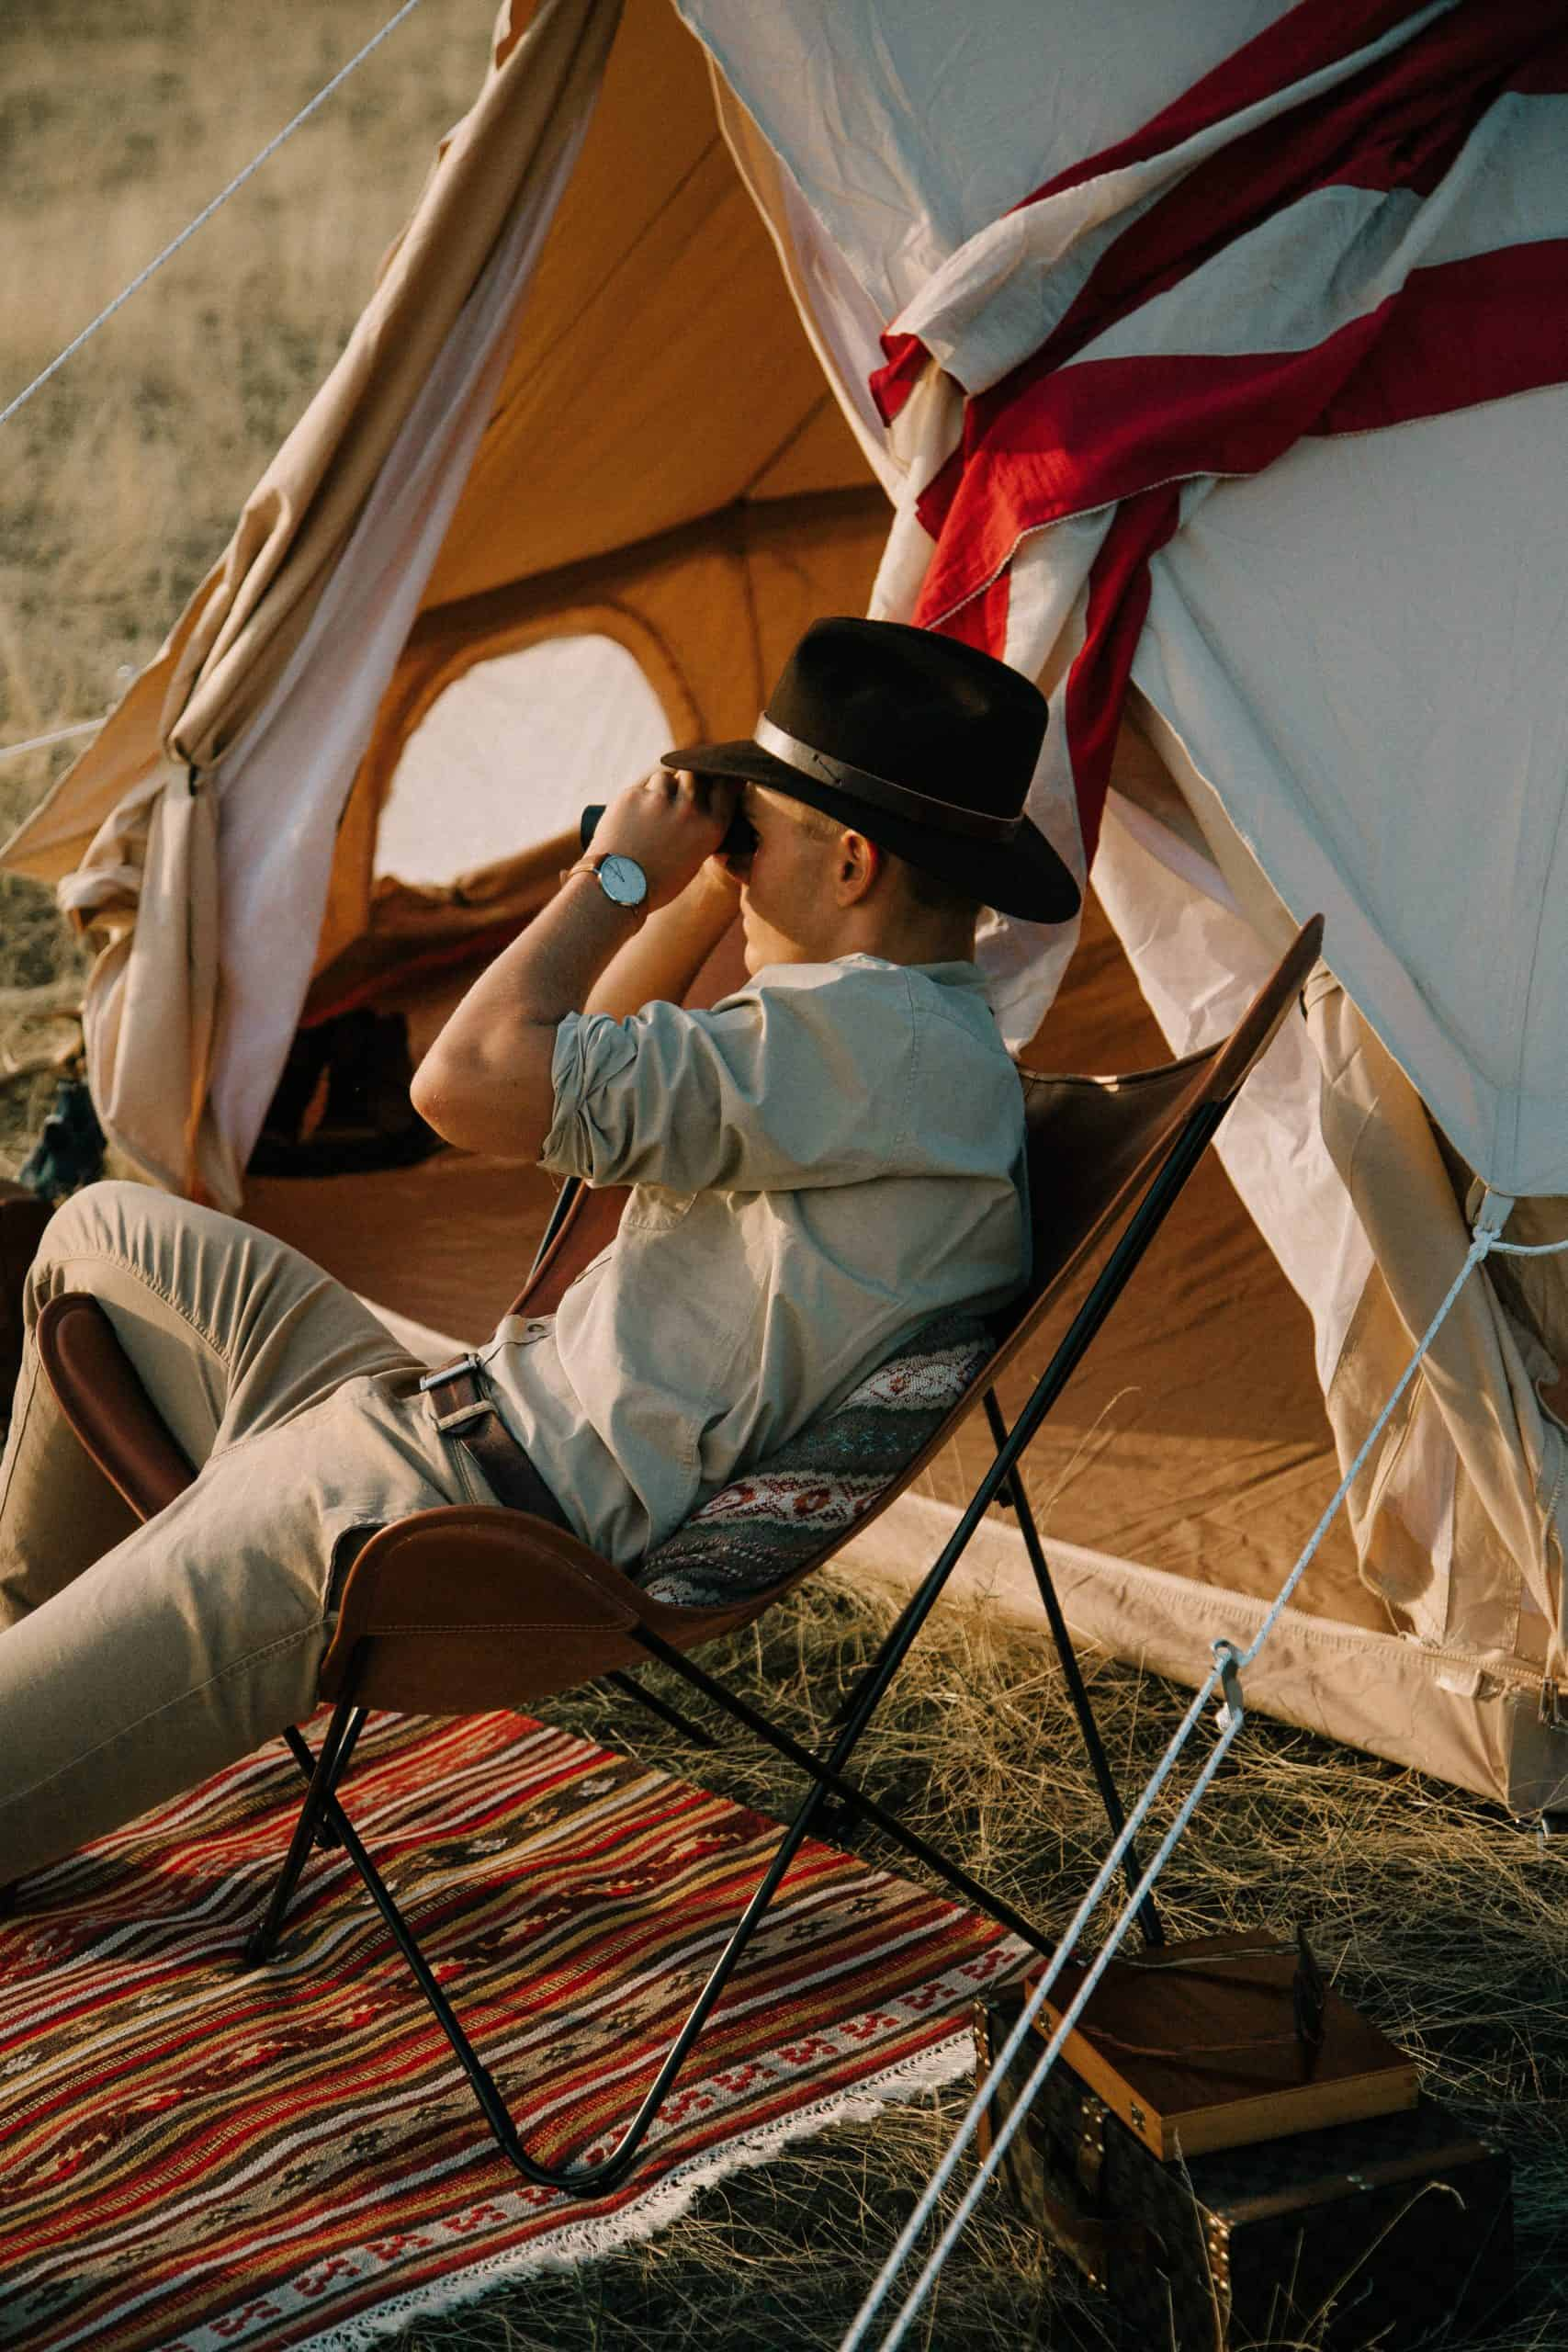 Top Camping Activities - Going on a Vacation With Friends